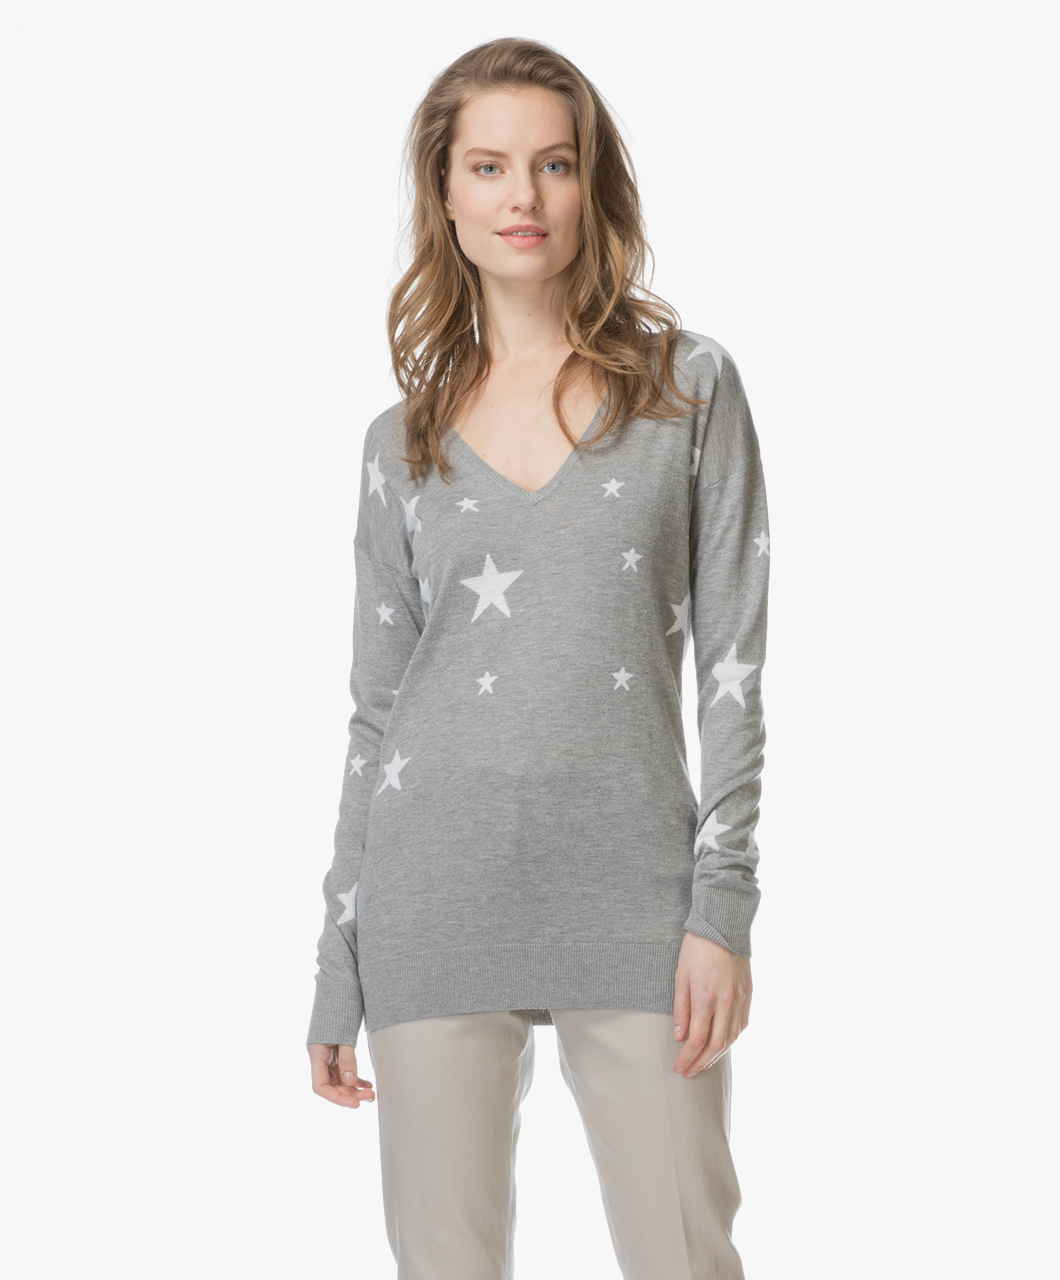 Baukjen Loxley Intarsia Star Print Sweater - Grey/Off-white - tp788 |  loxley gmw - marl and off